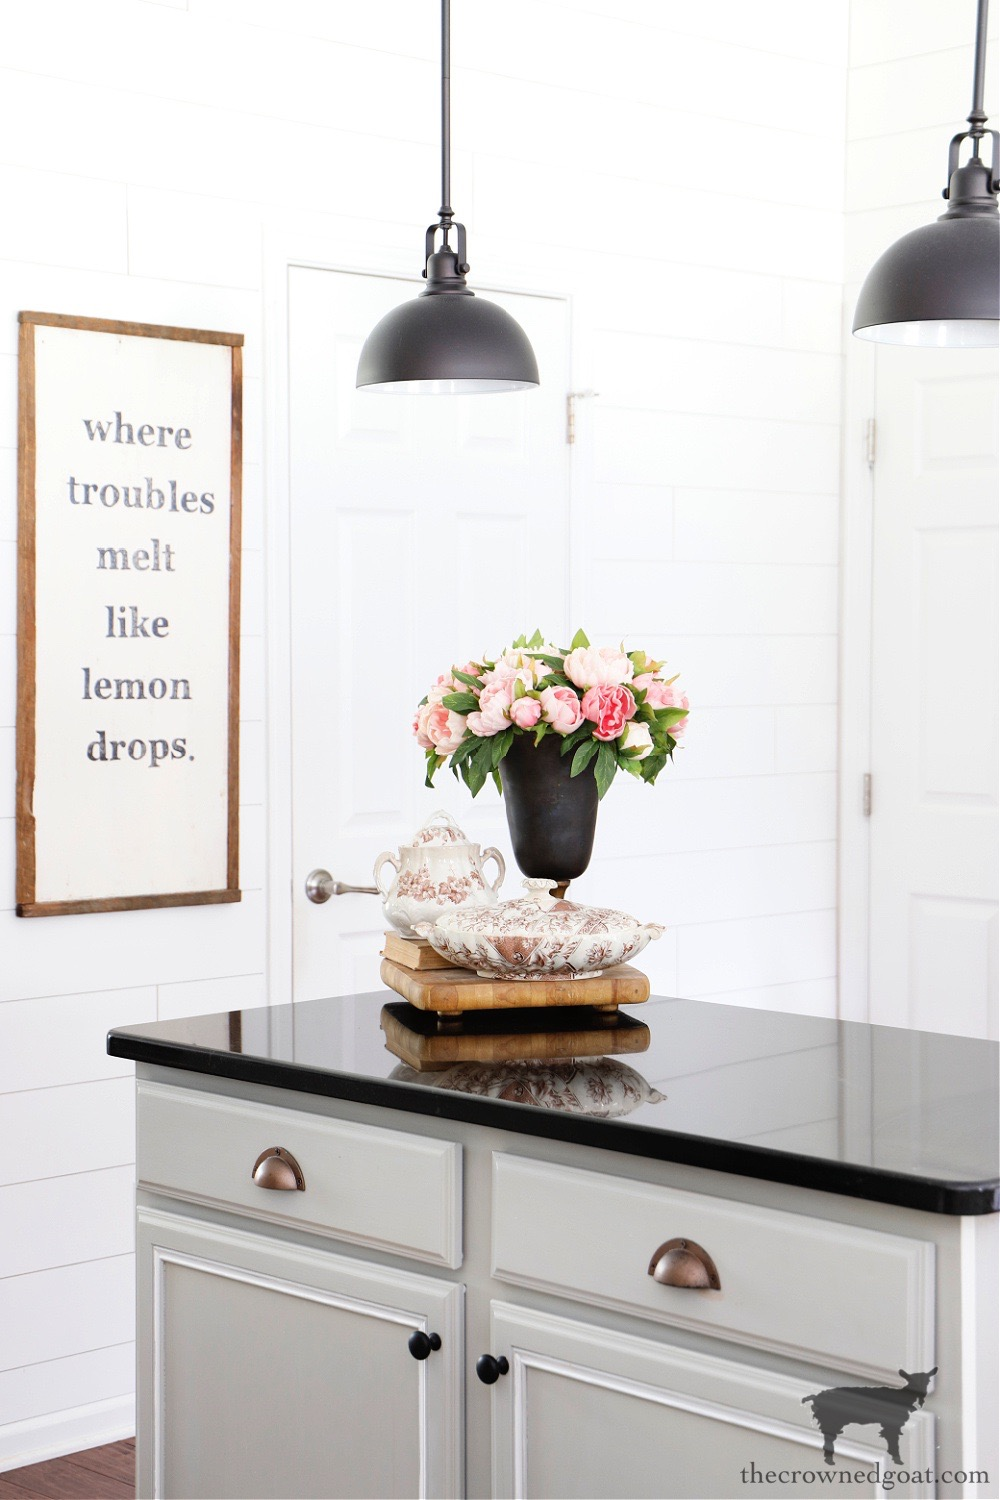 11 Ways to Clean, Organize, and Maintain a Tidy Kitchen-The Crowned Goat